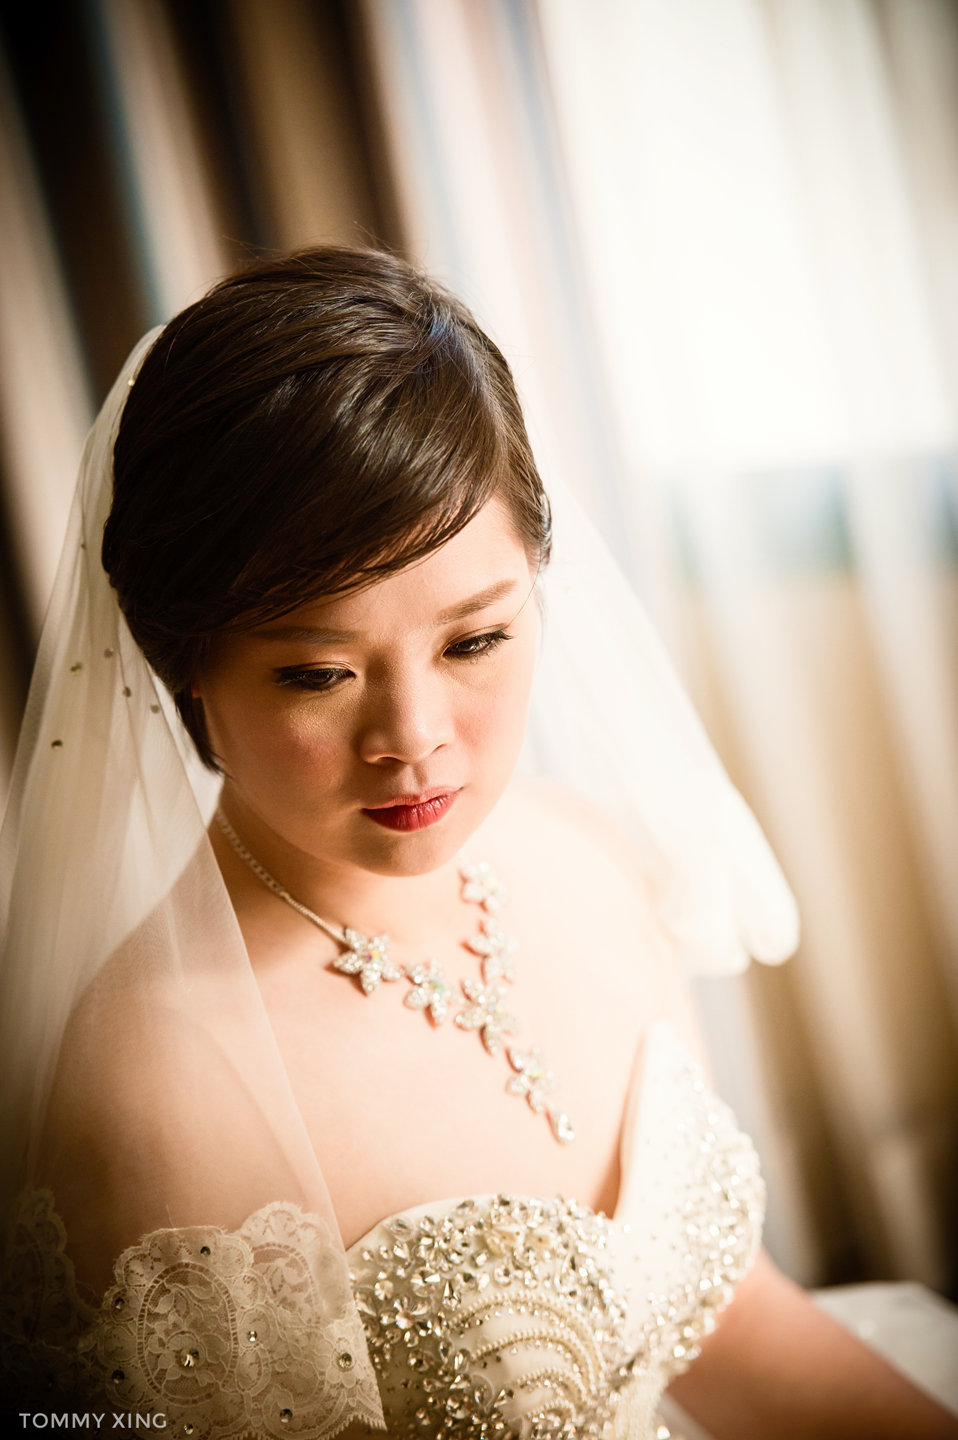 Los Angeles Chinese Wedding Photographer WAYFARERS CHAPEL Tommy Xing 洛杉矶婚礼婚纱摄影 032.jpg